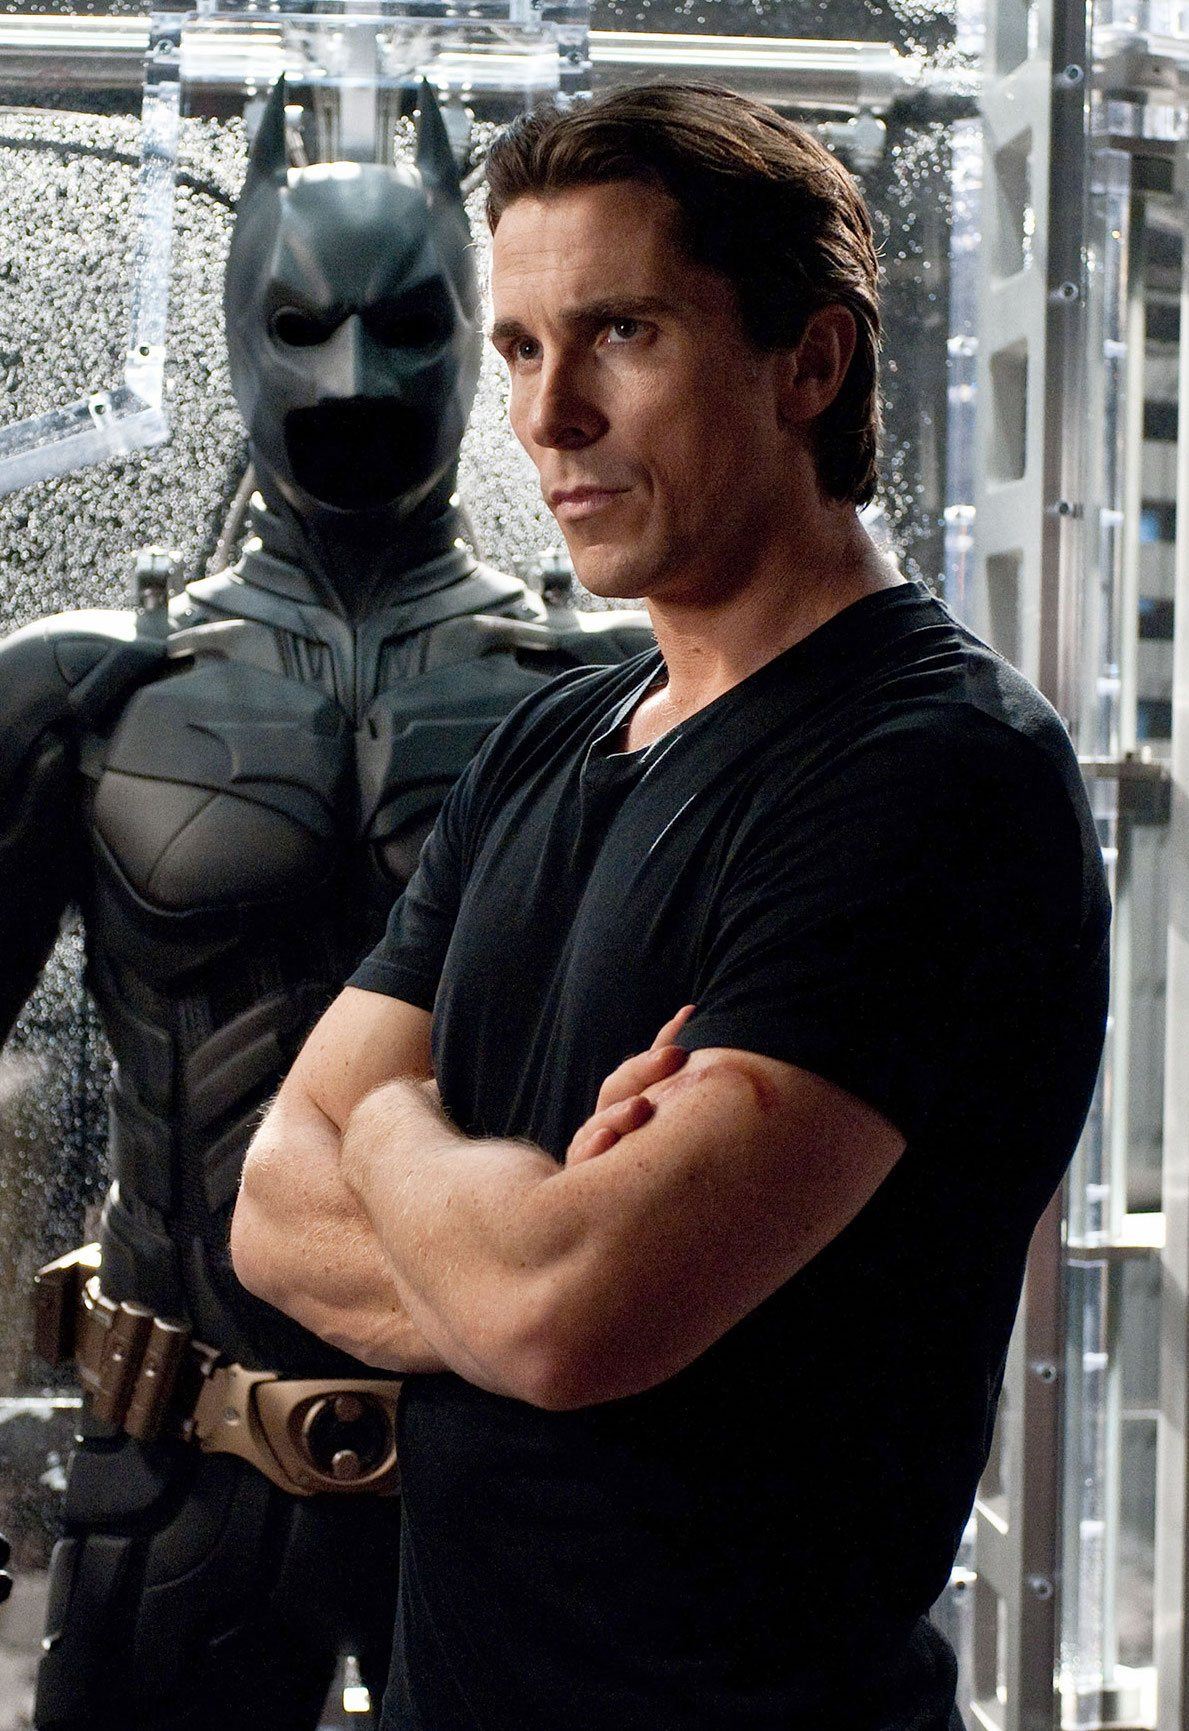 dkr 33543 25 Things You Didn't Know About The Dark Knight Rises